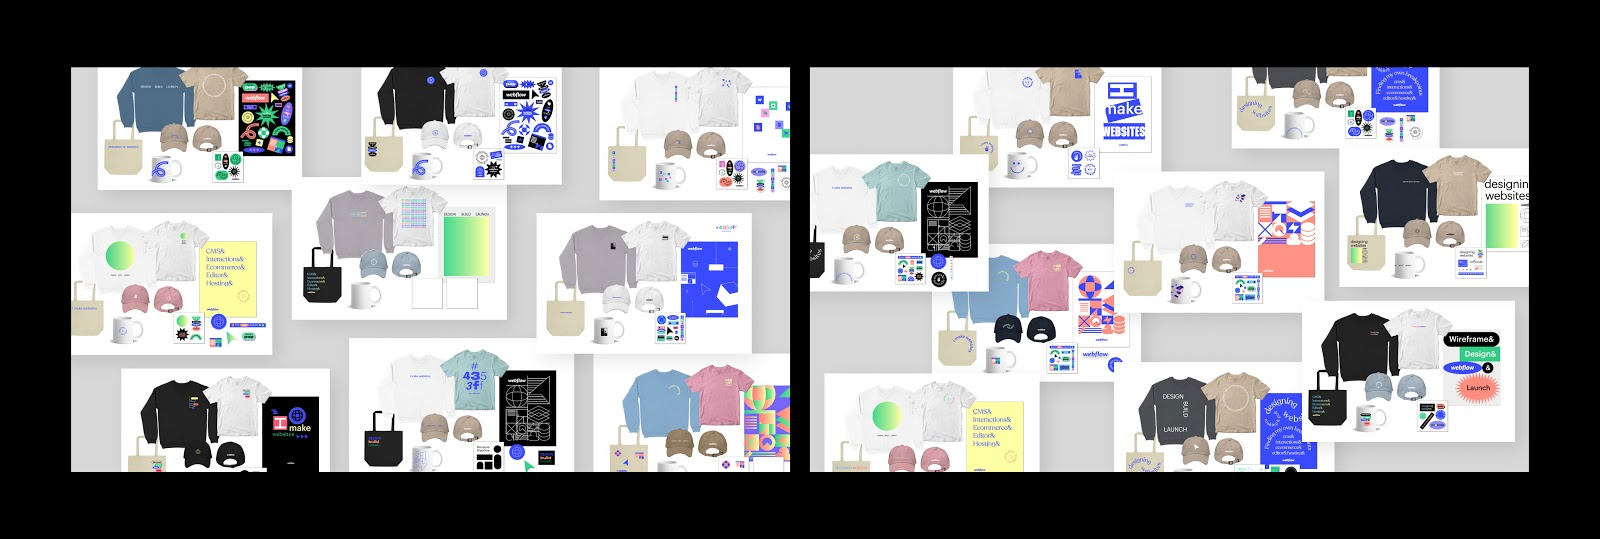 Images of different styles of shirts, sweatshirts, hats, and posters that we explored for the merch store.